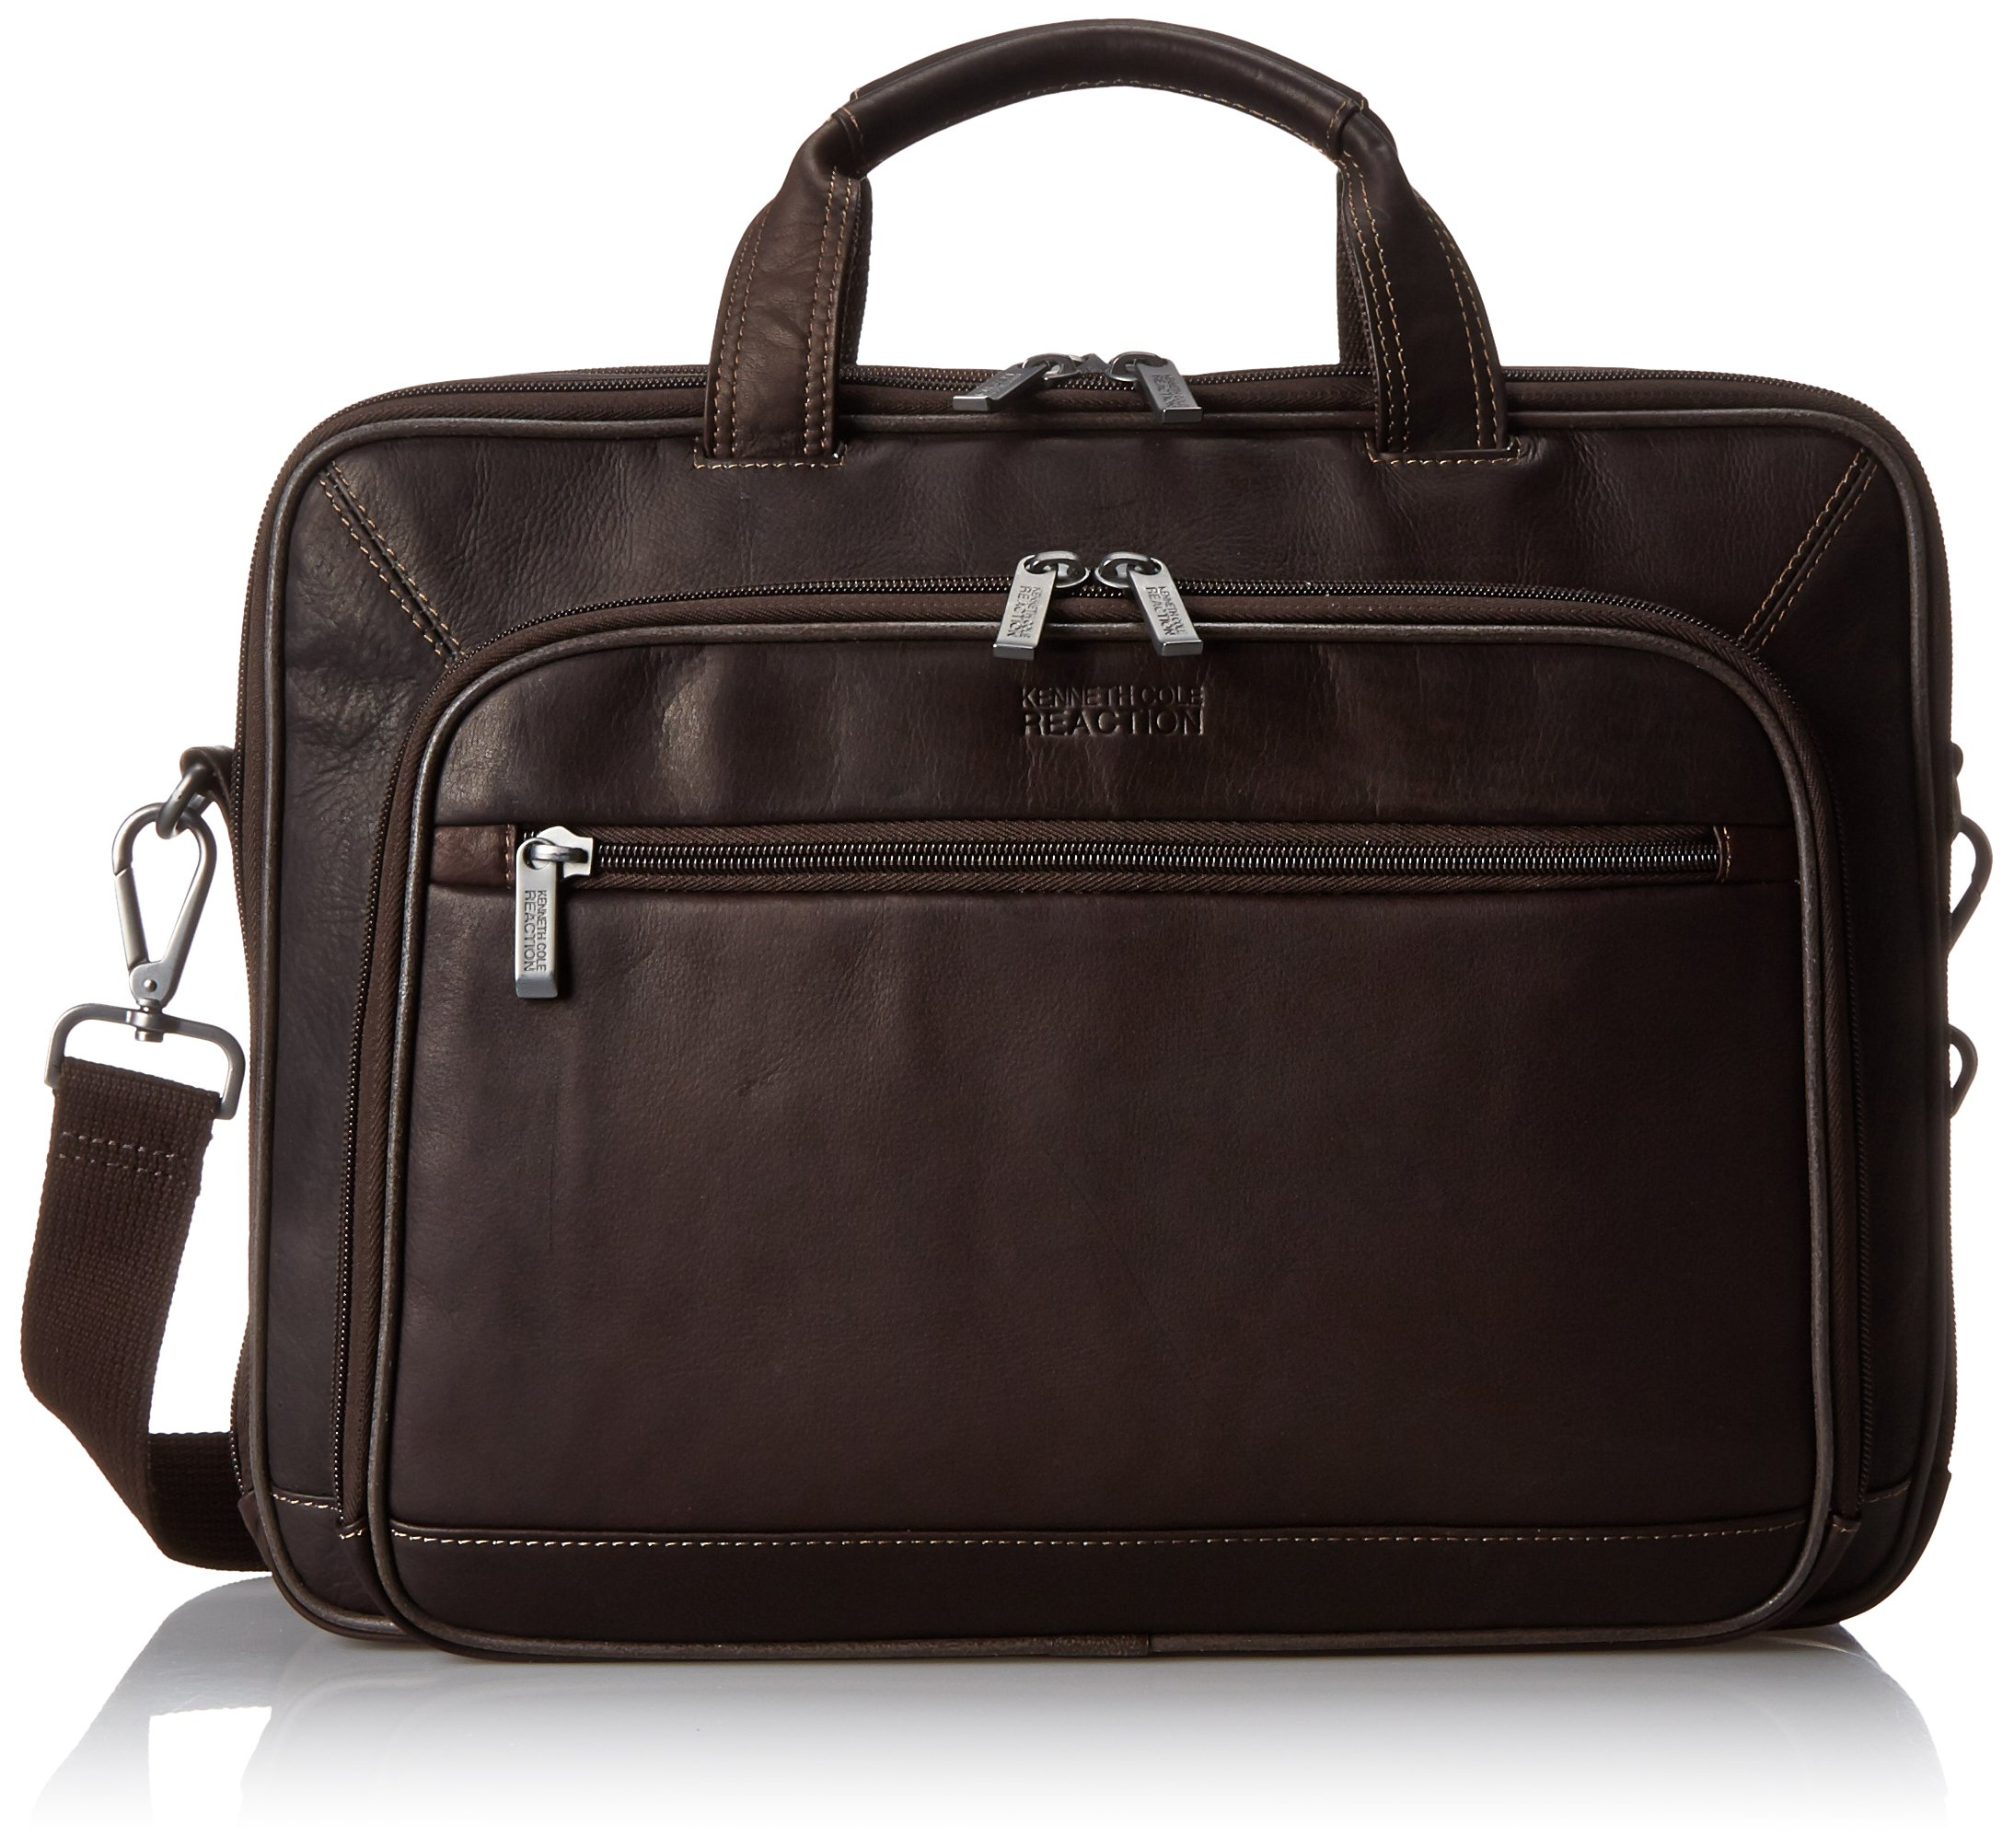 Kenneth Cole Reaction Leather Double Gusset Computer Case, Brown, One Size by Kenneth Cole REACTION